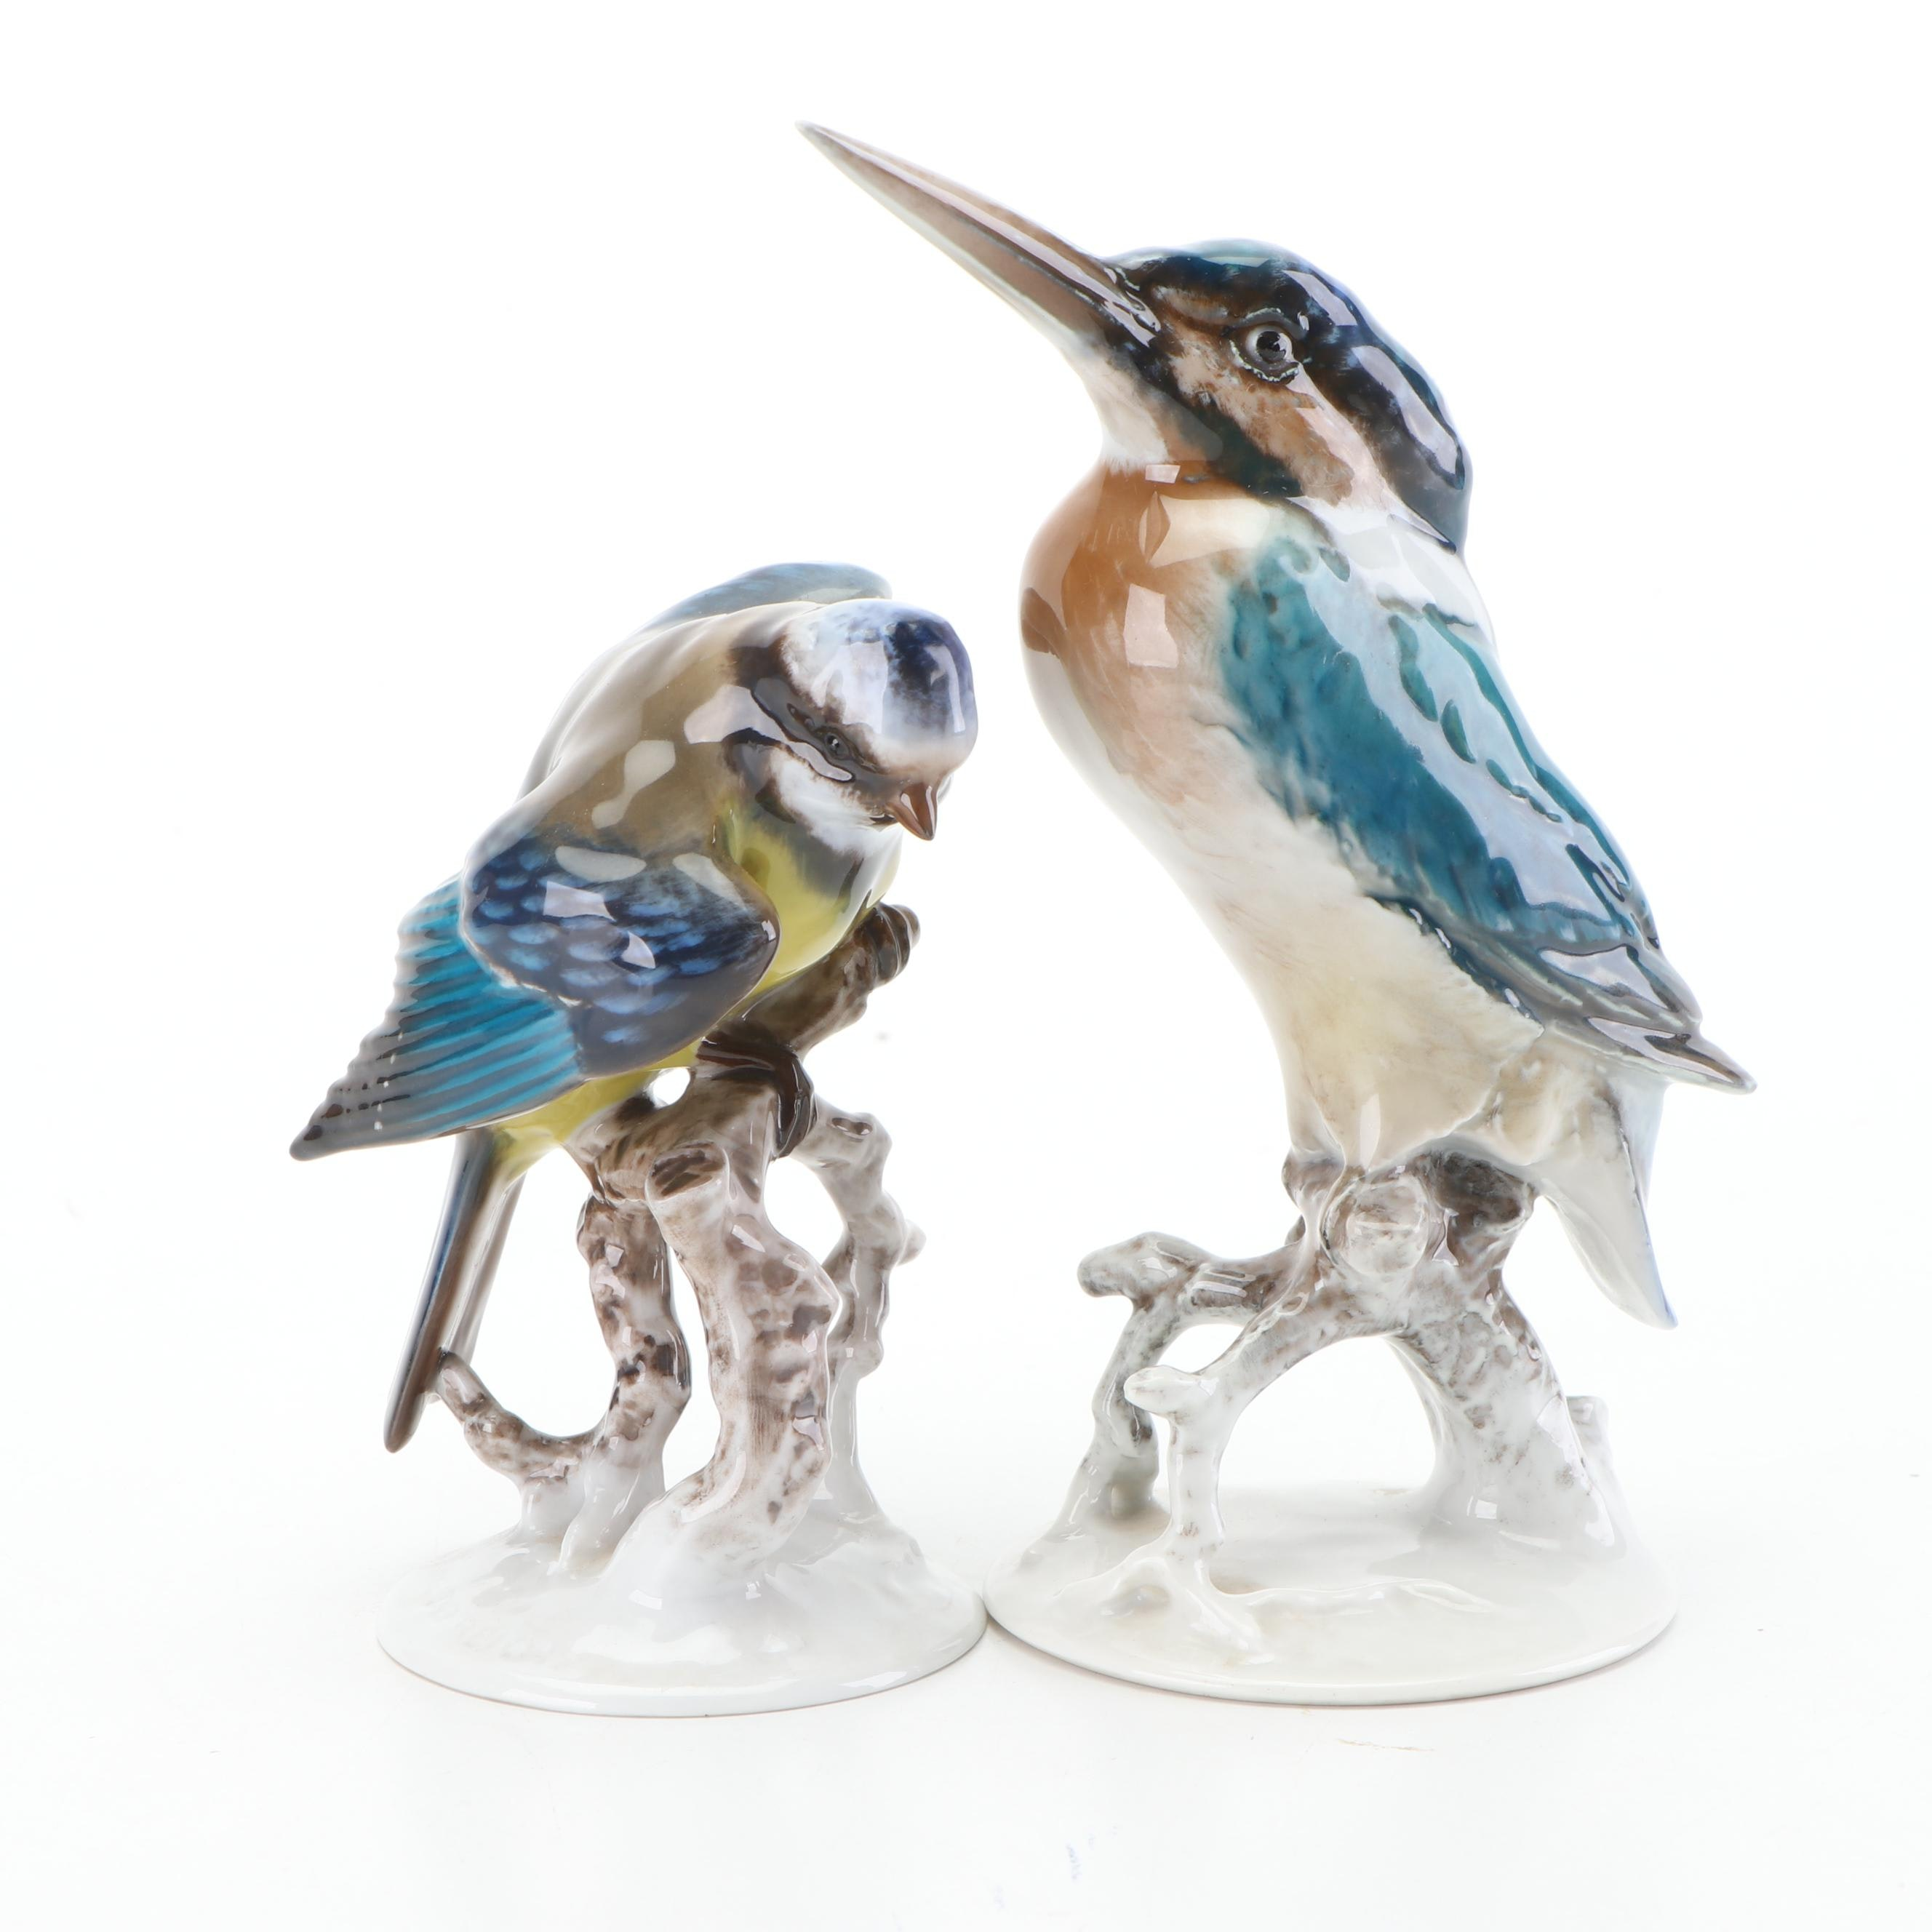 Rosenthal Porcelain Bird Figurines